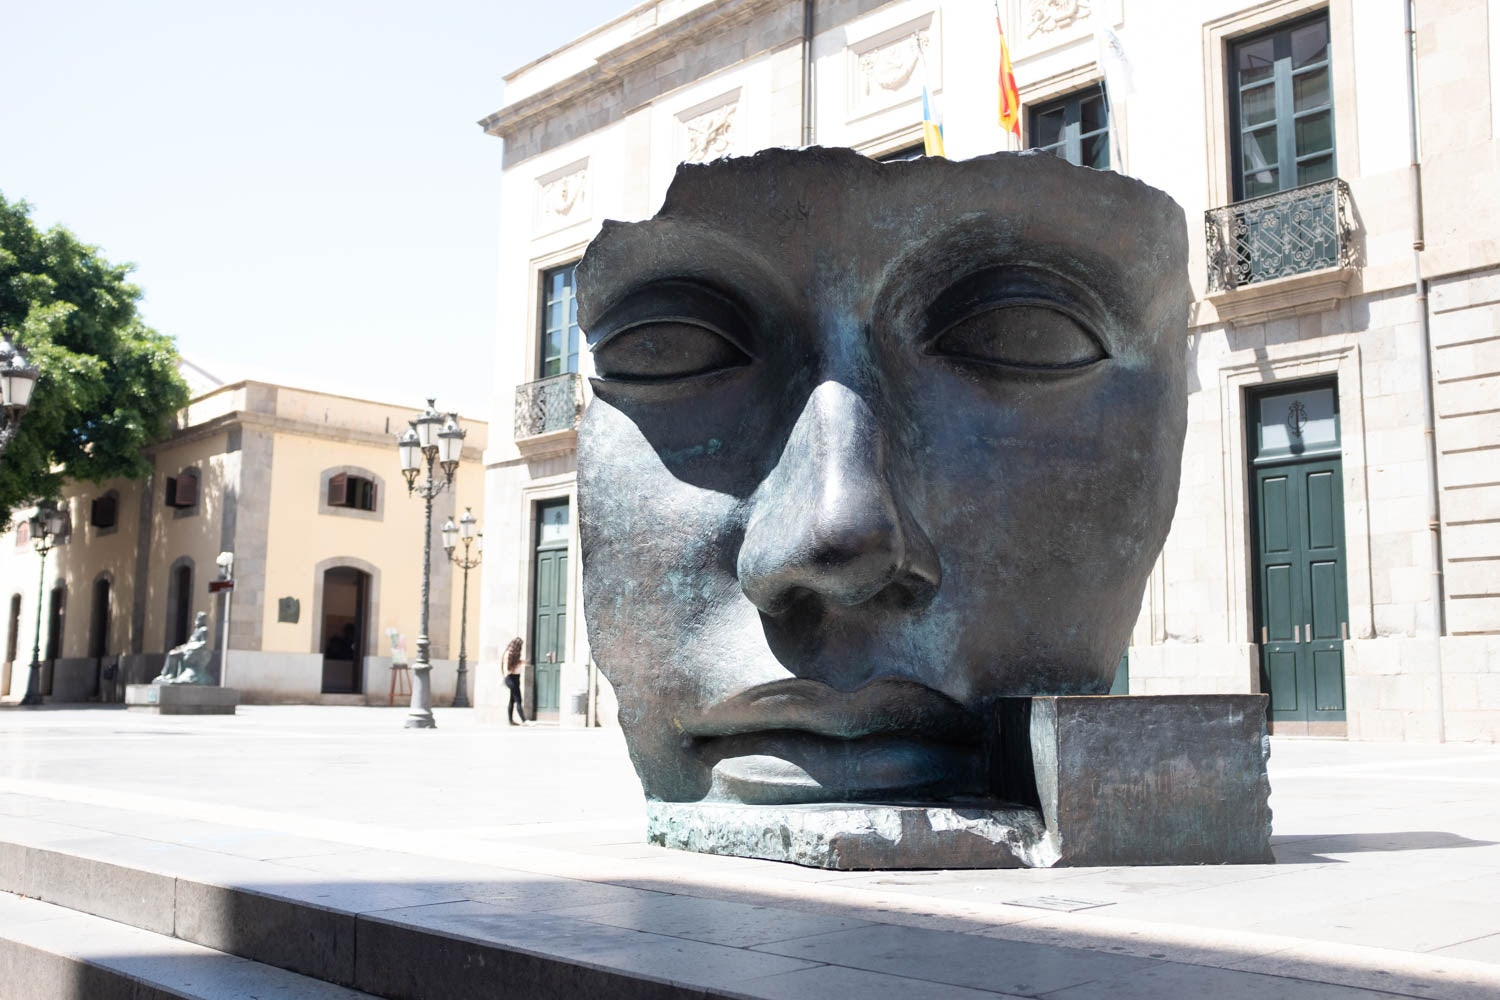 sculpture of a face at the Teatro Guimera in Tenerife